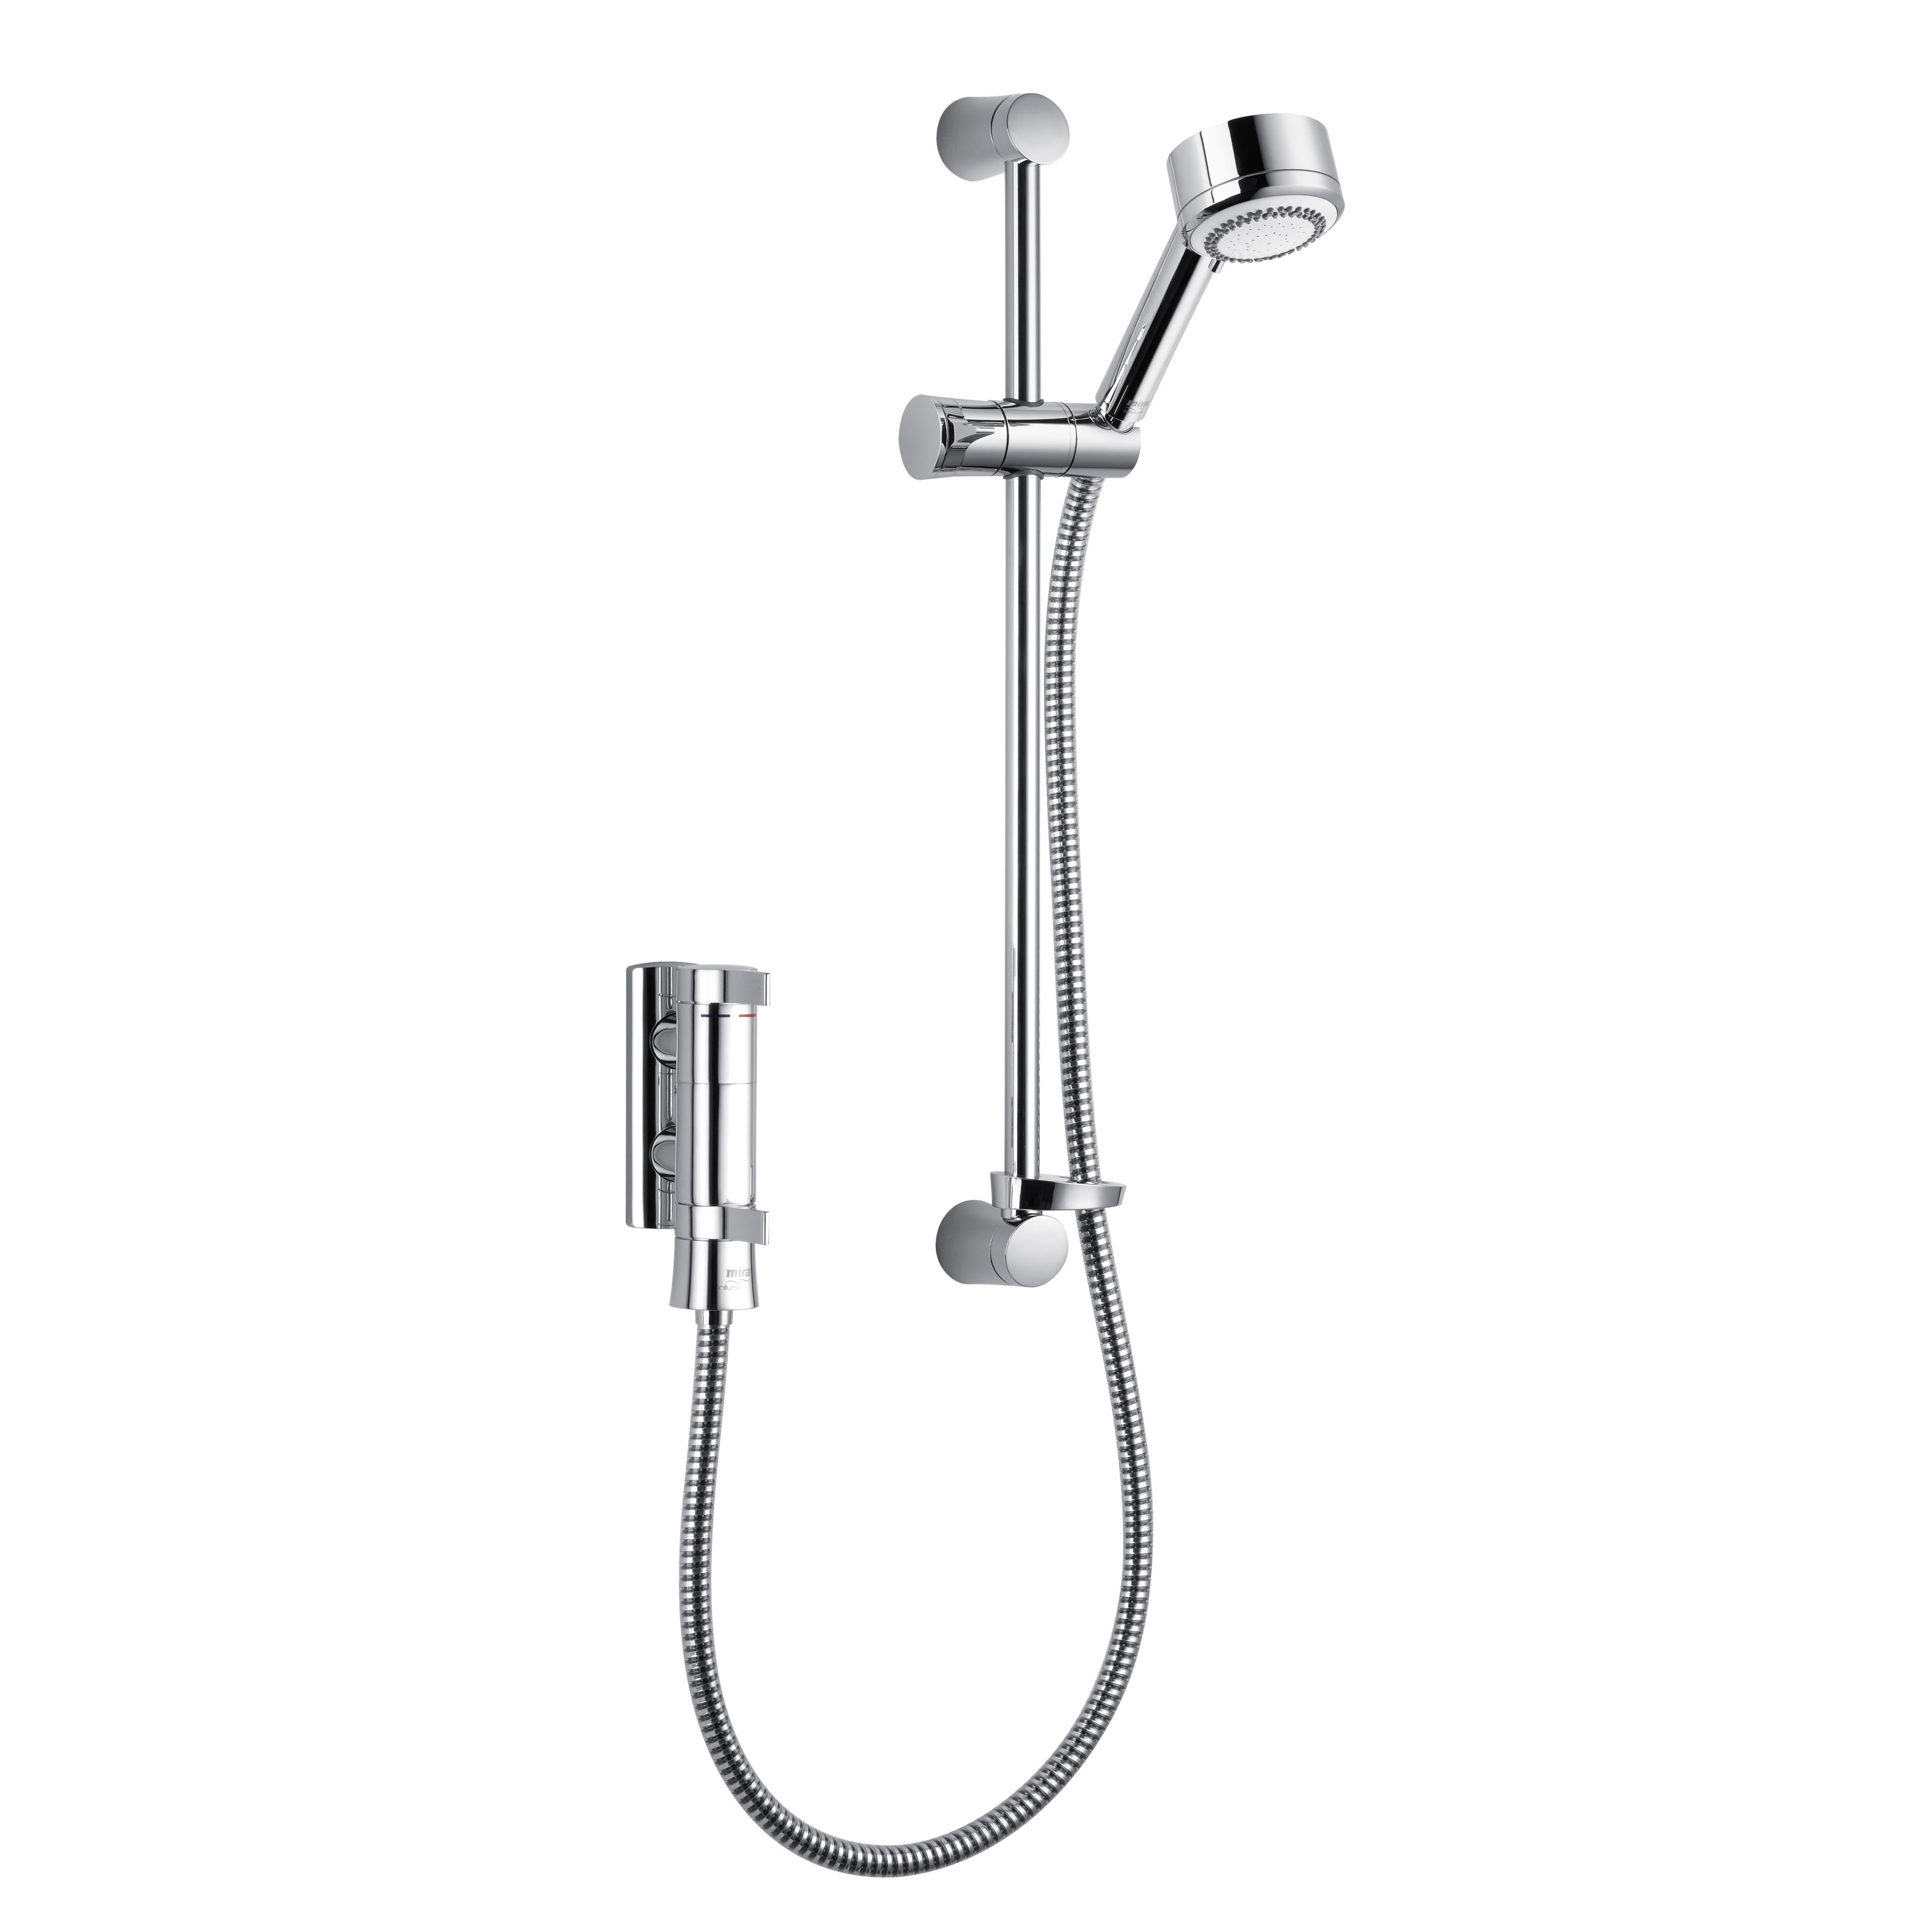 Mira Infuse Ev Chrome Thermostatic Bar Mixer Shower